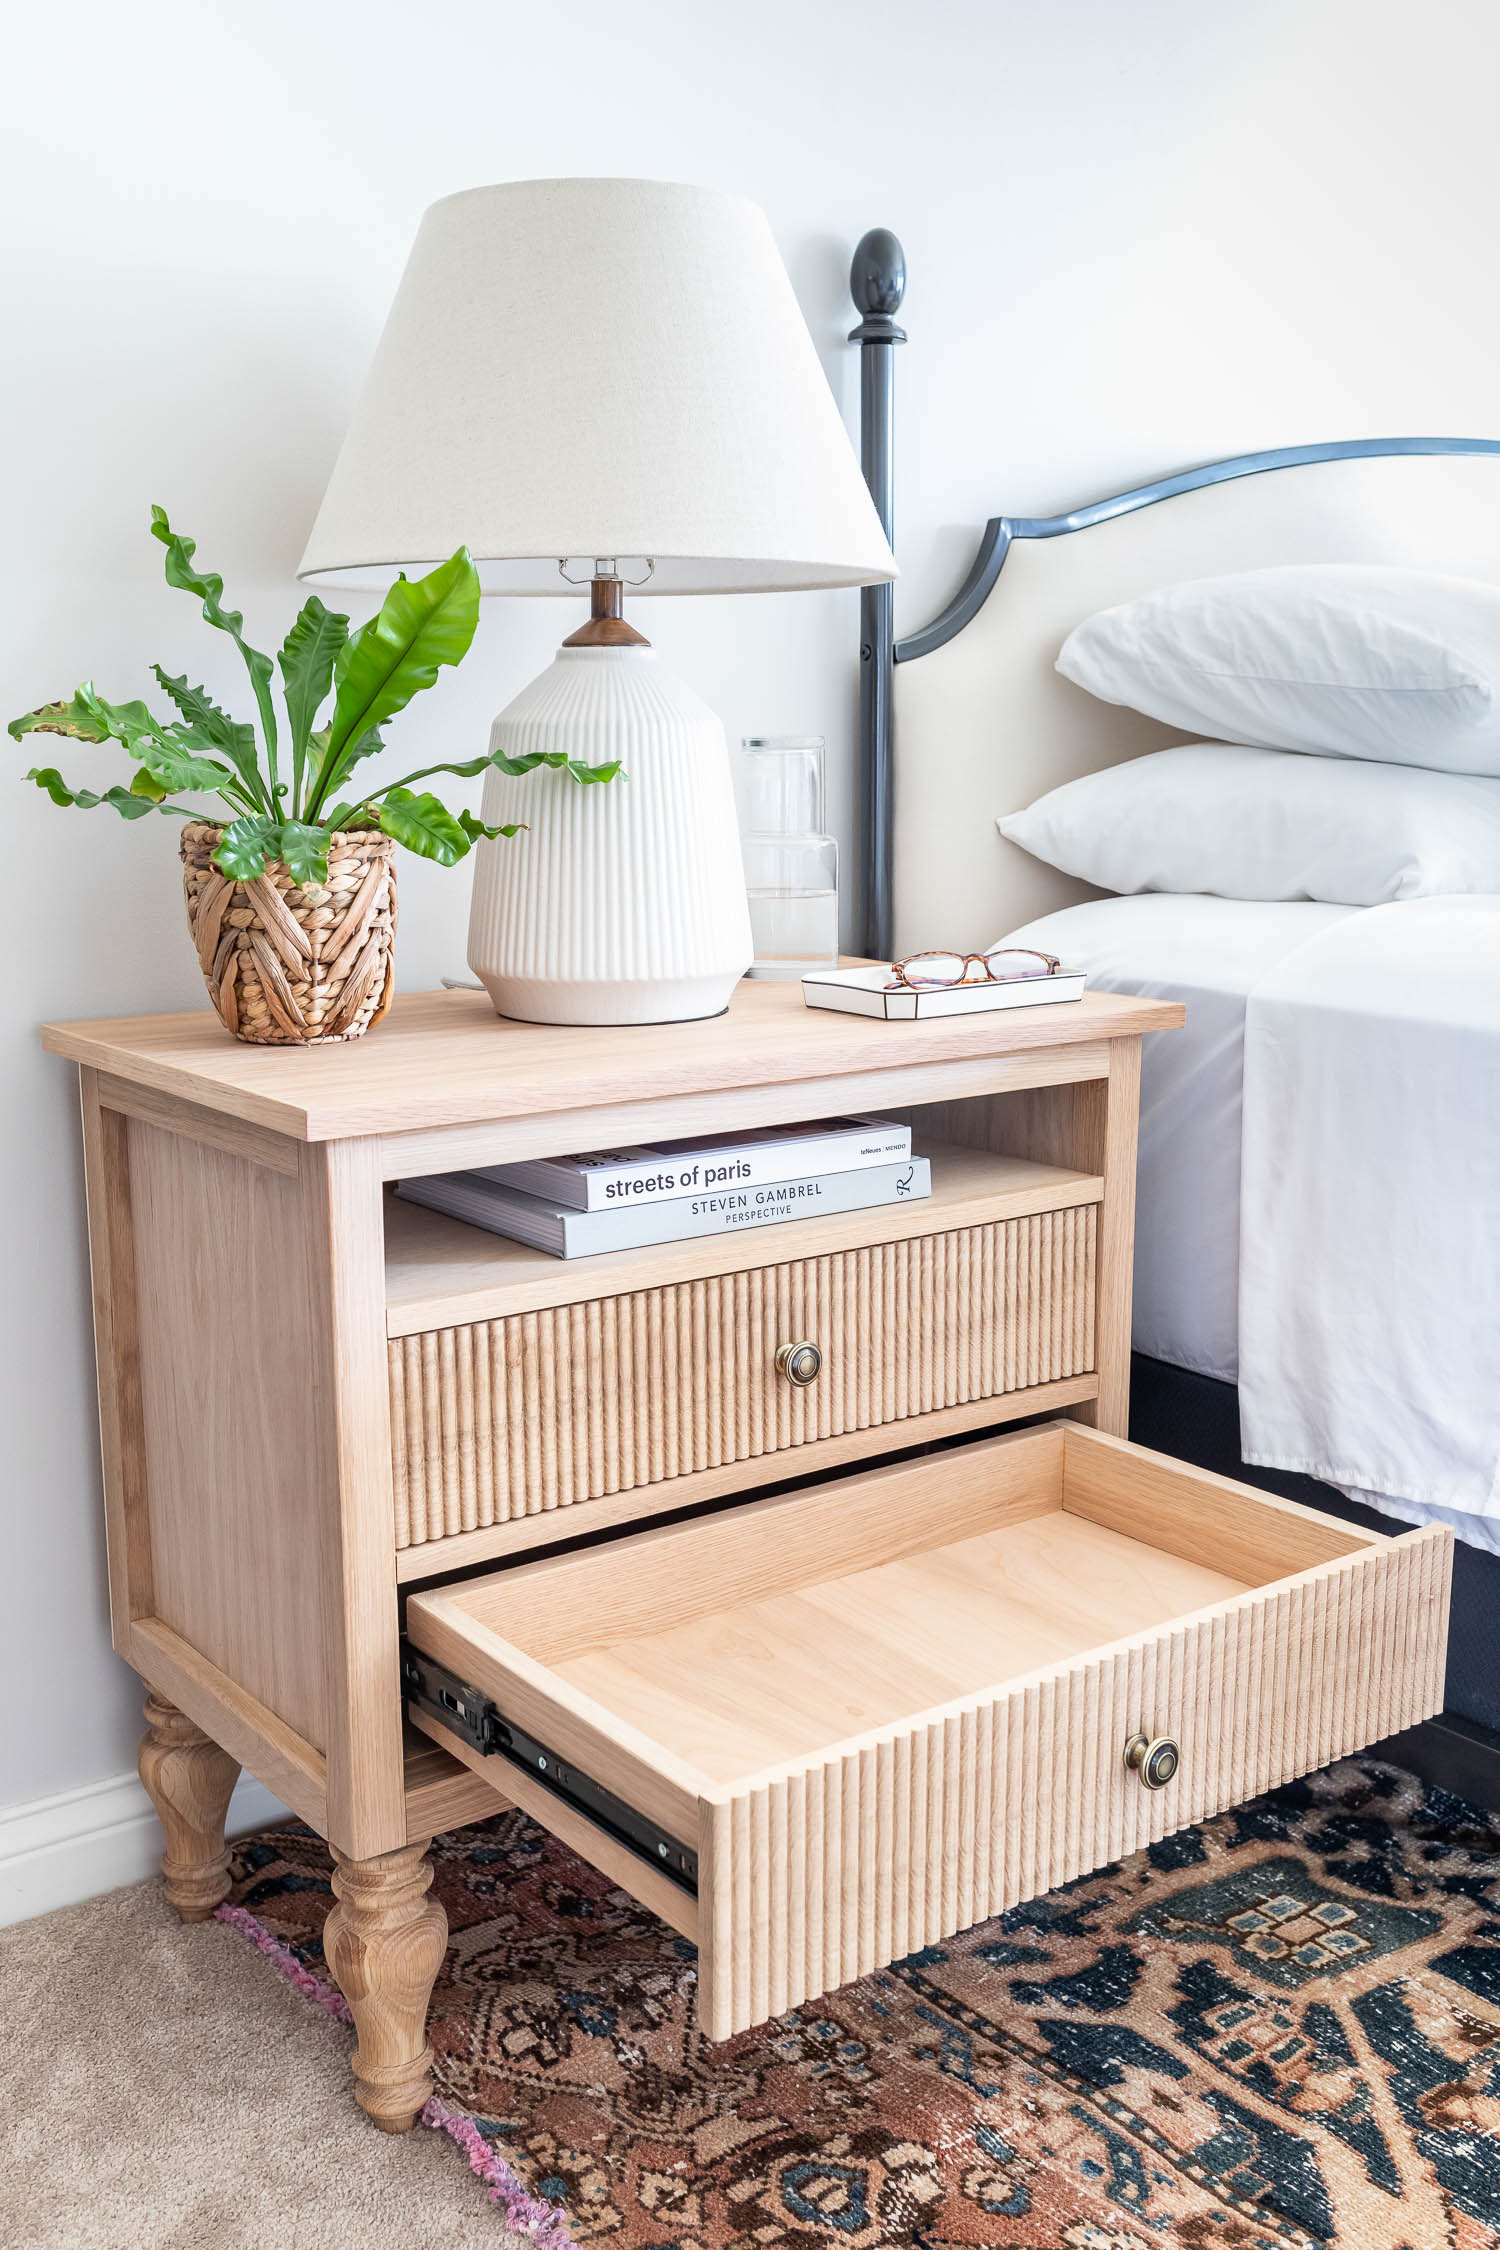 French country / Swedish Gustavian bedside tables - white oak nightstands with beaded drawers